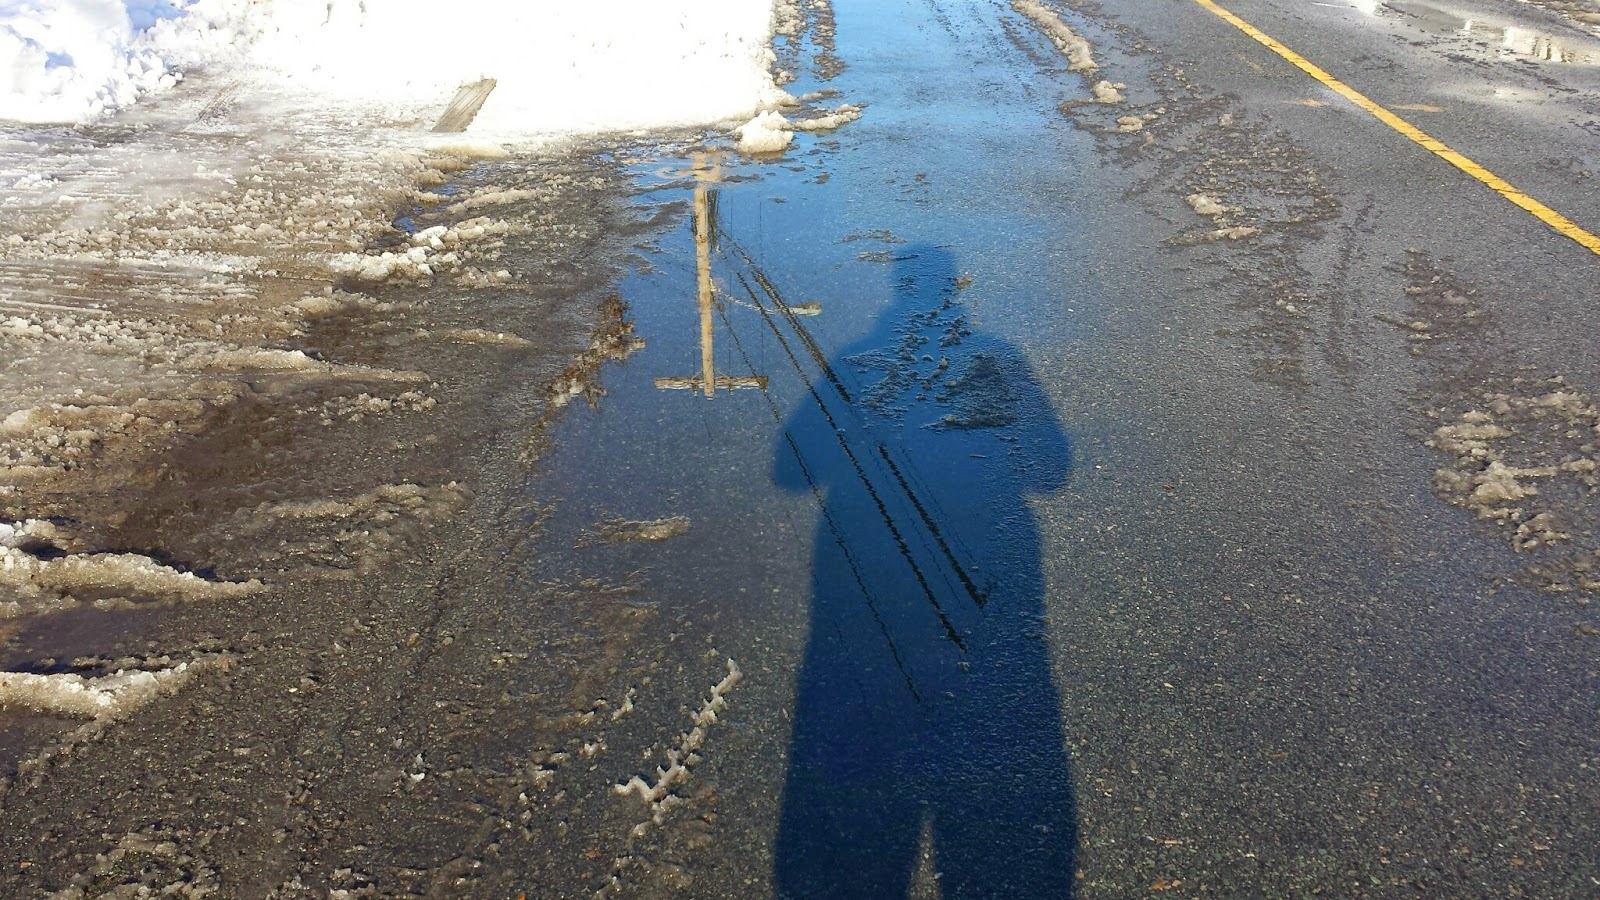 puddles bring reflections and new views to the world around us